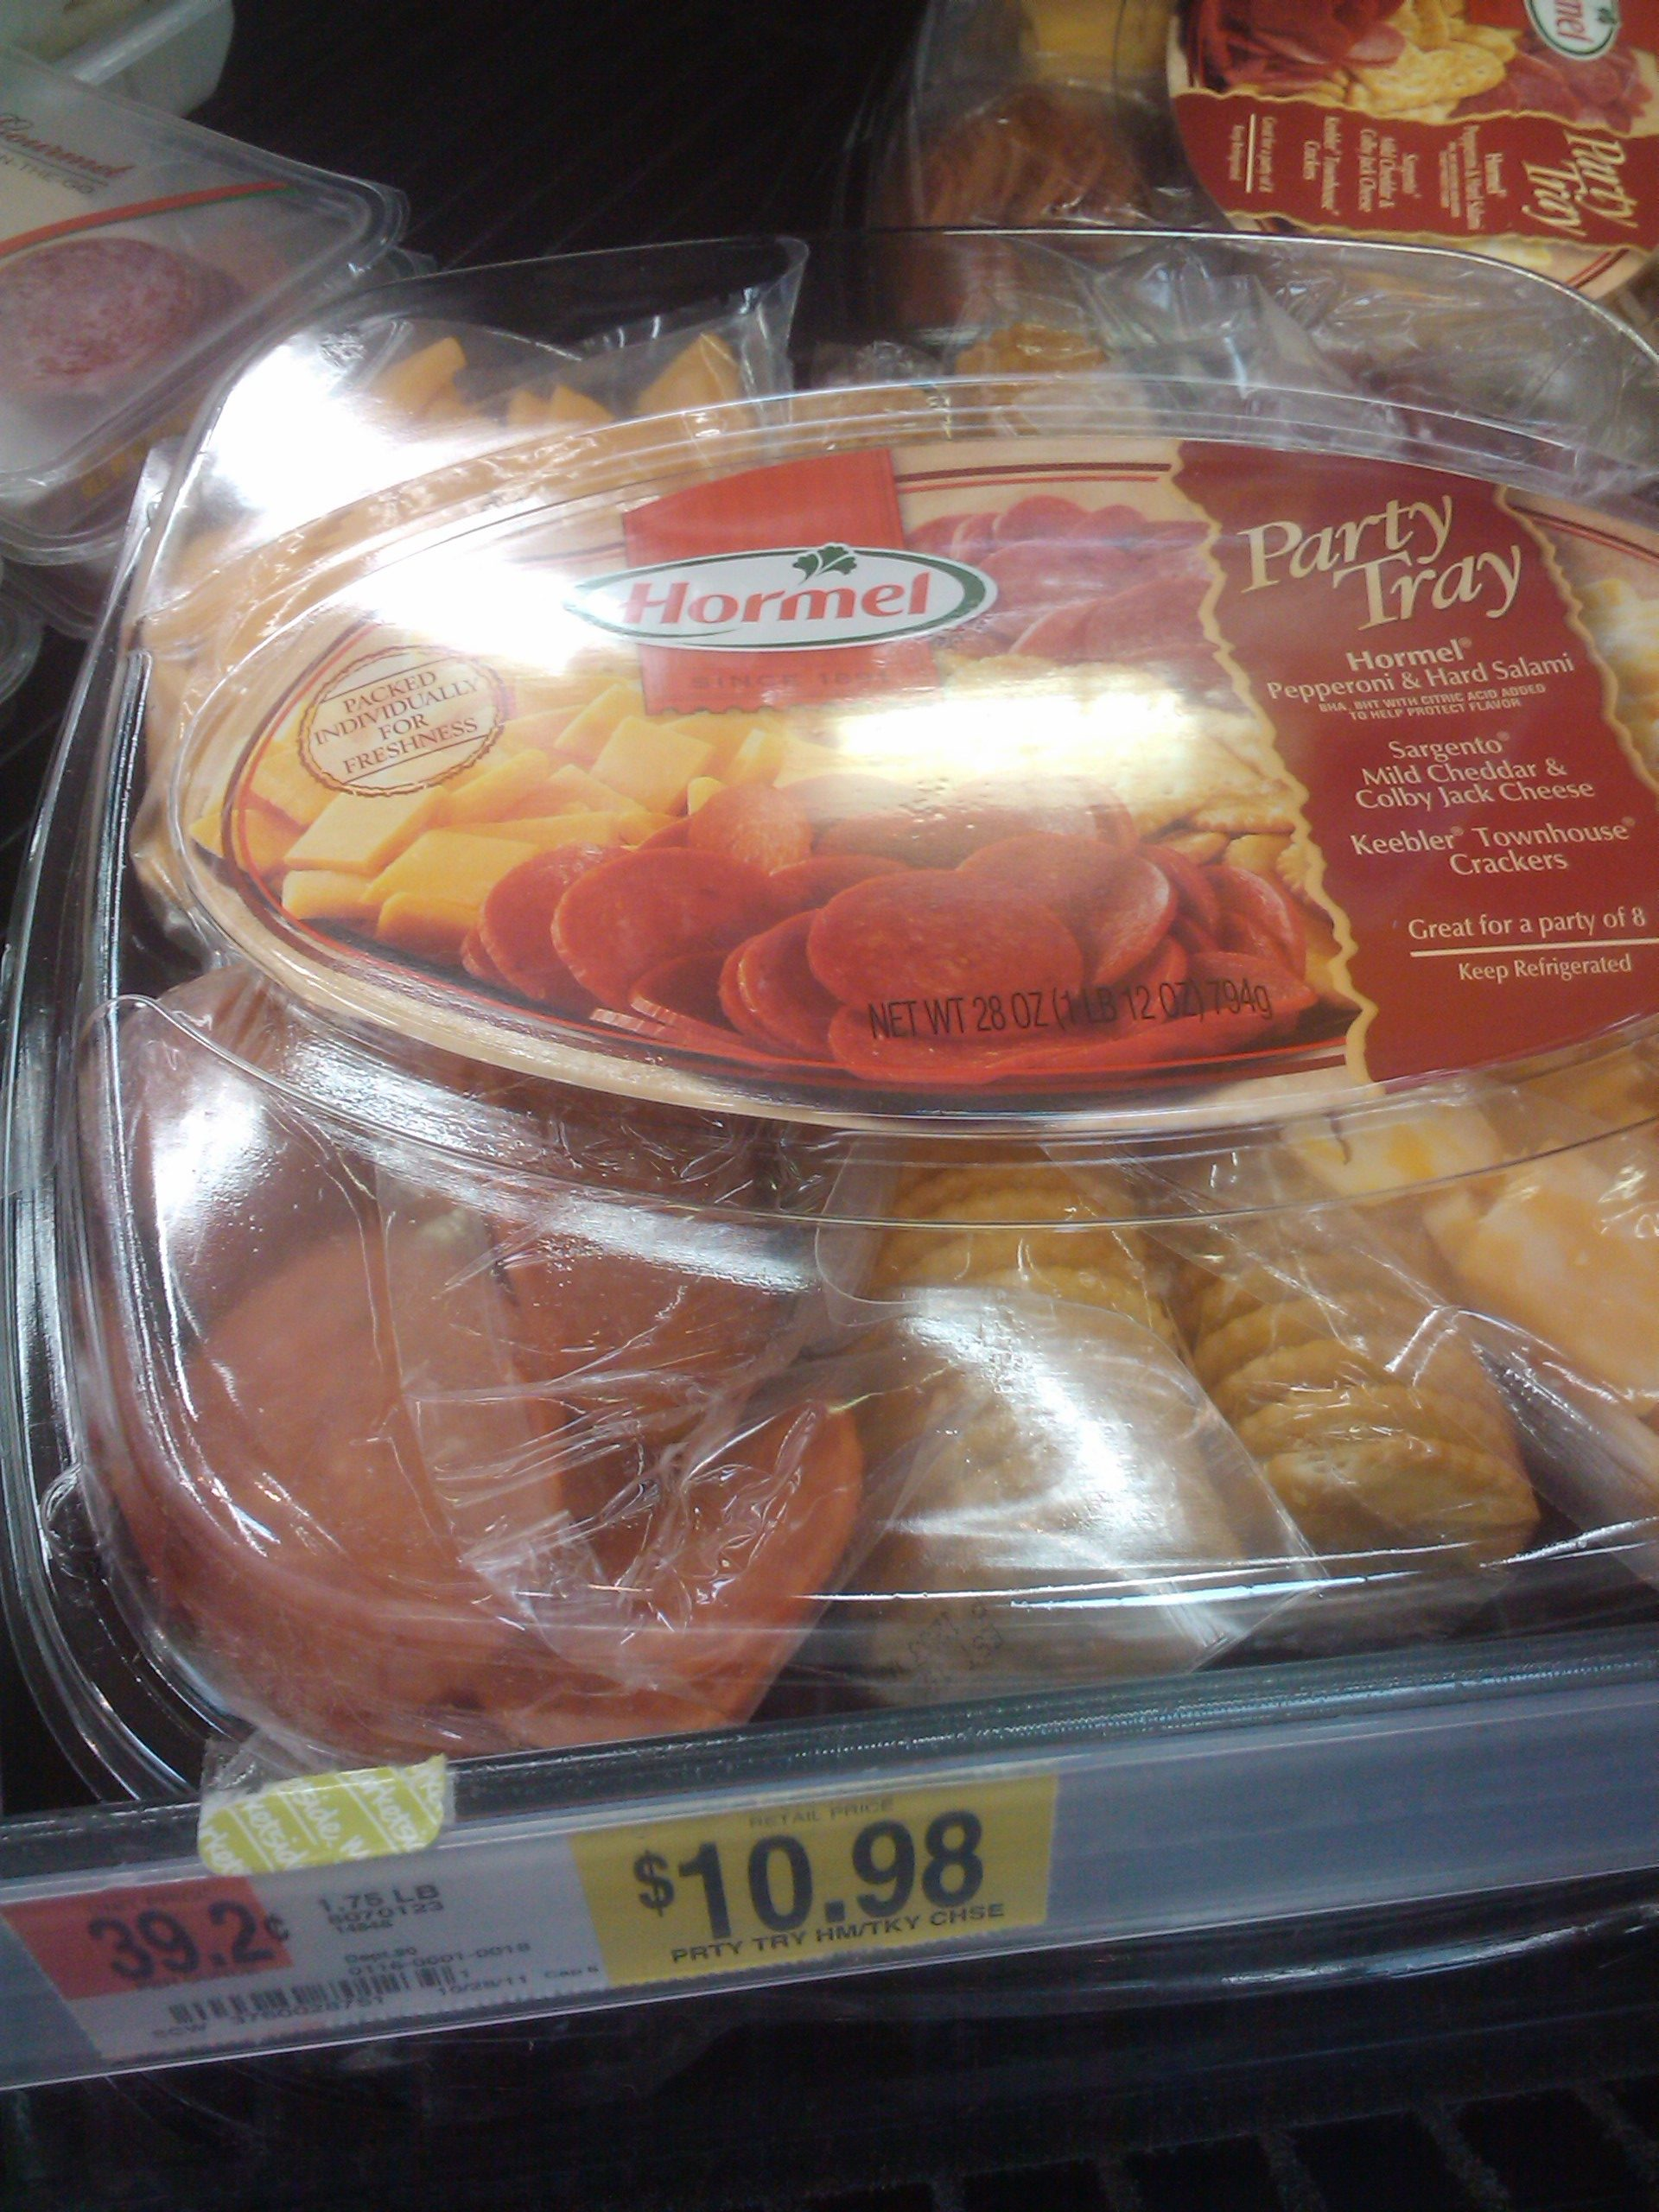 Hormel Party Tray 3-27-12